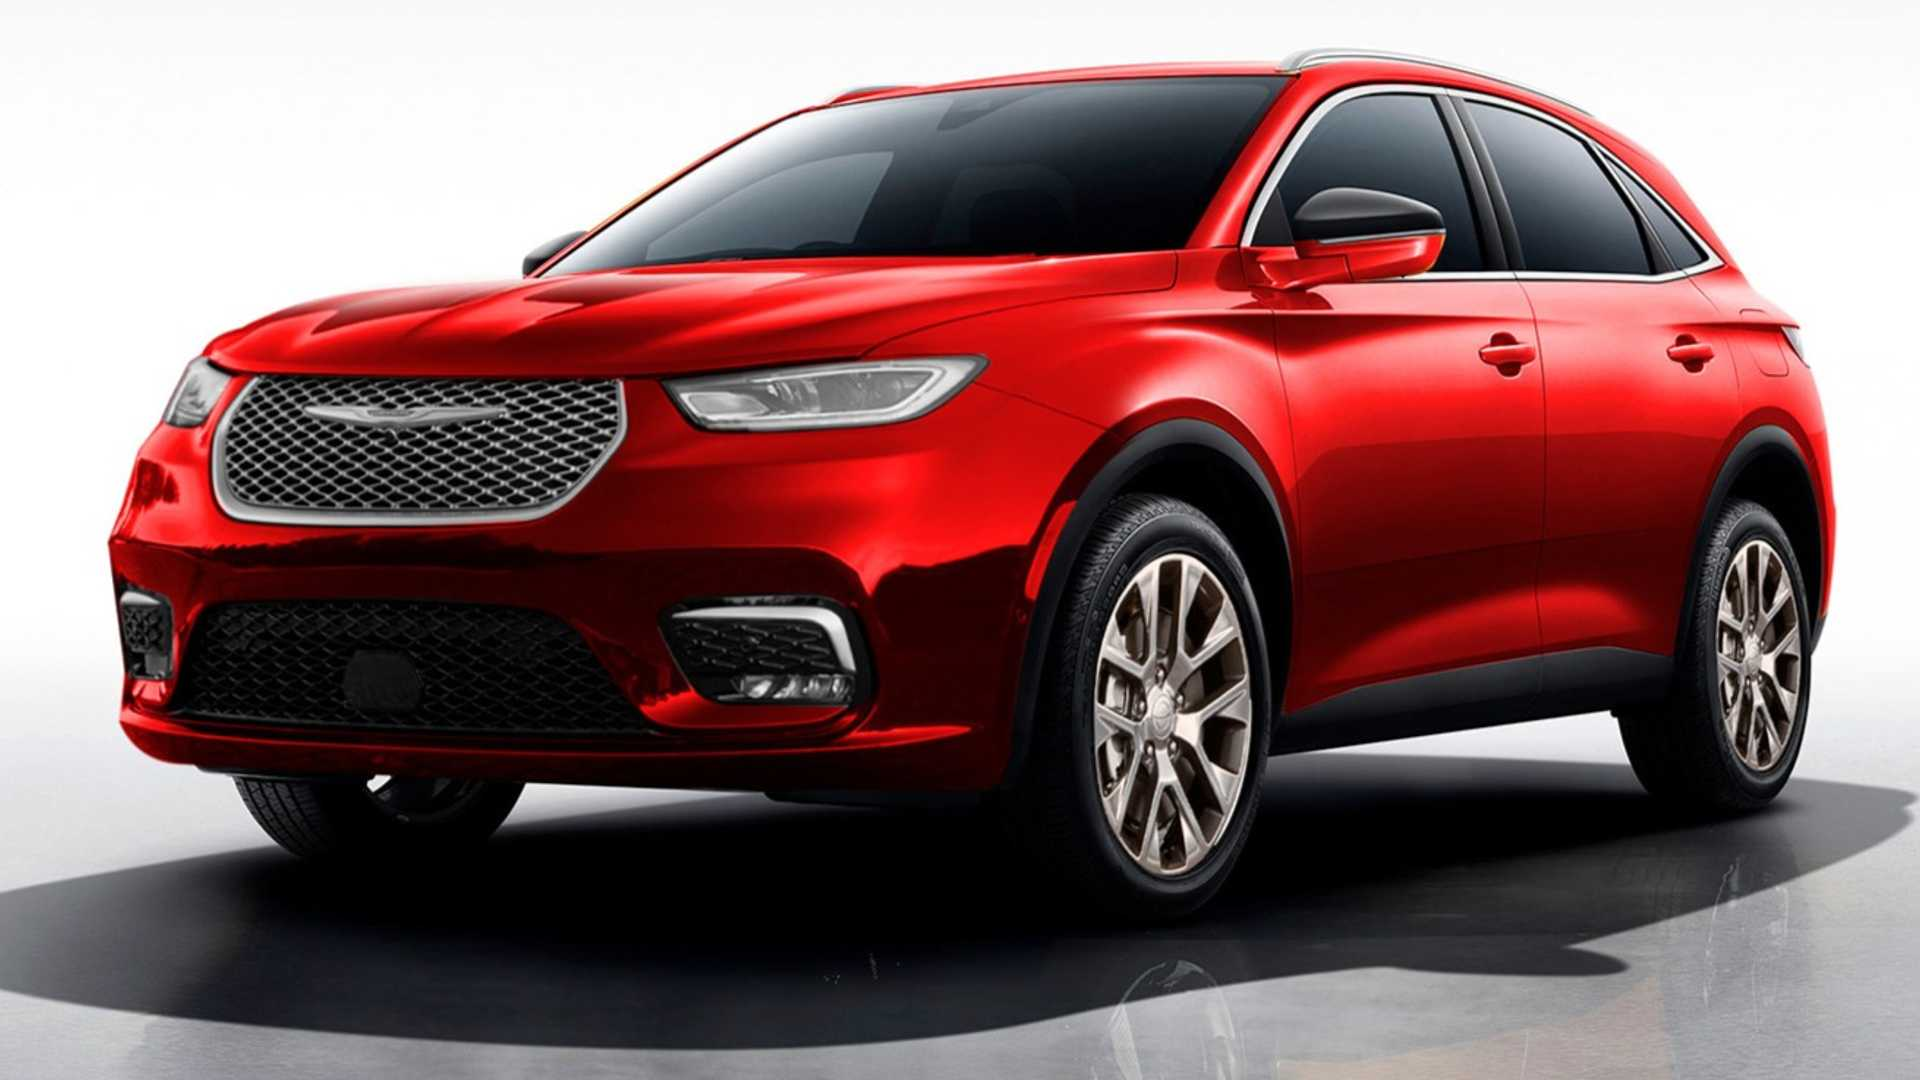 What If Chrysler Relaunched The Aspen? Check Out This Rendering